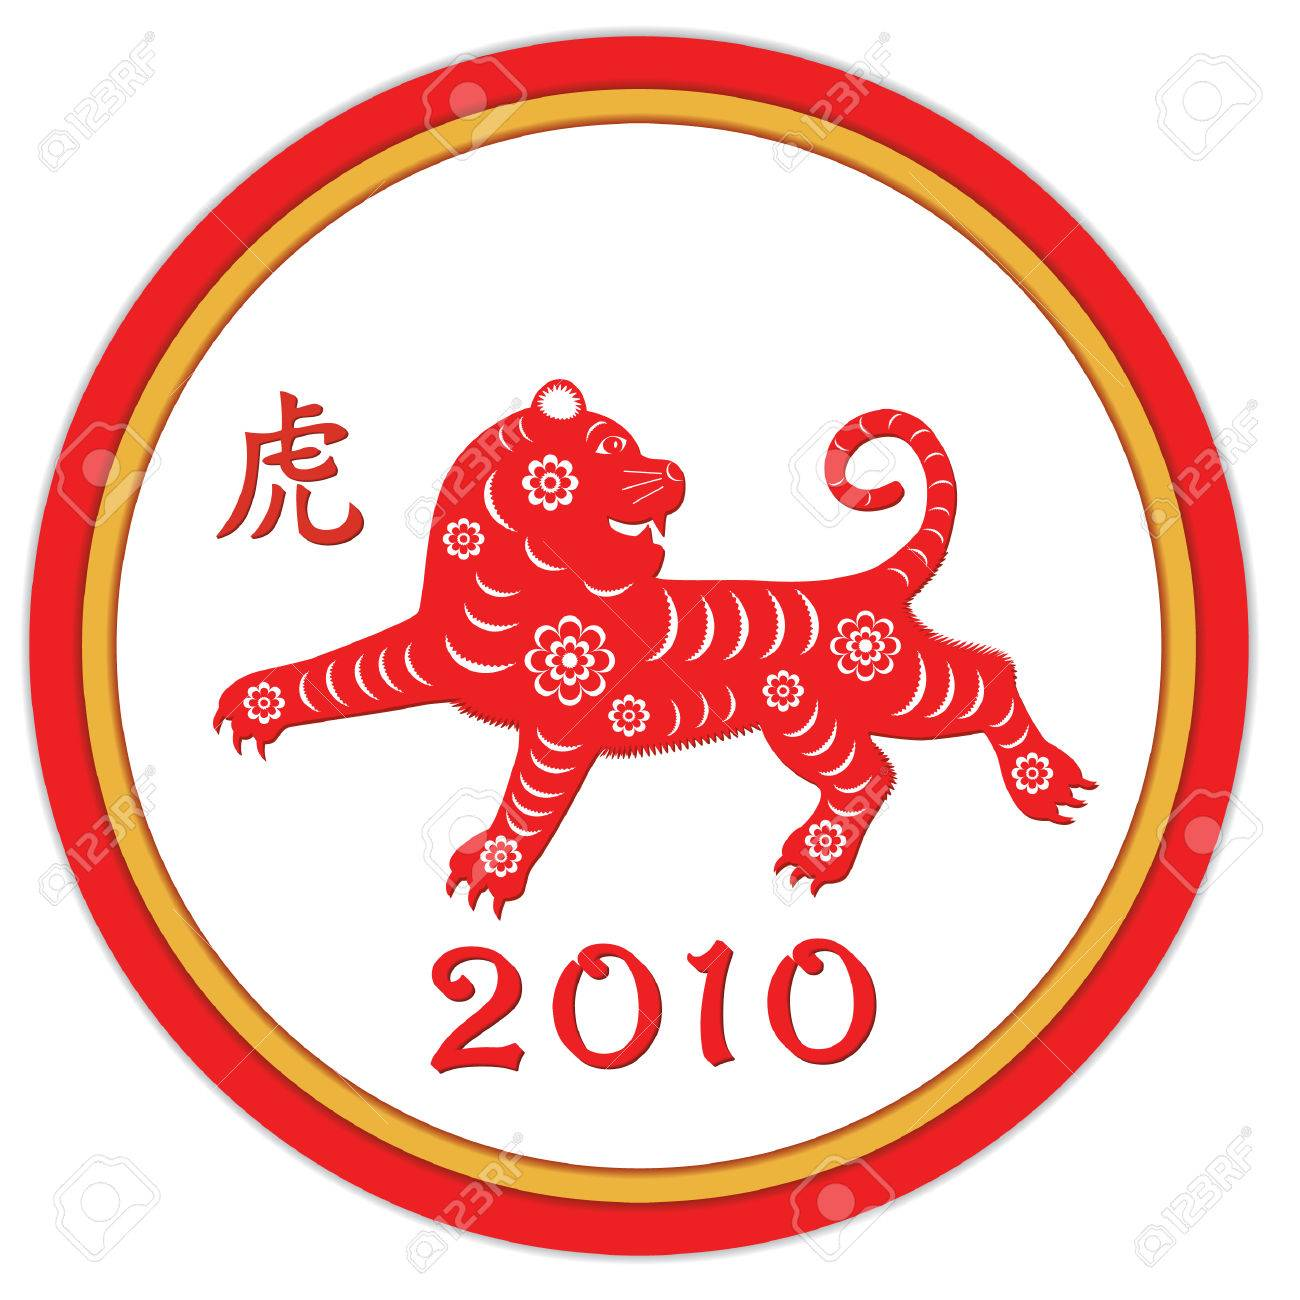 stylized paper cut tiger in circular border for chinese new year 2010 stock vector